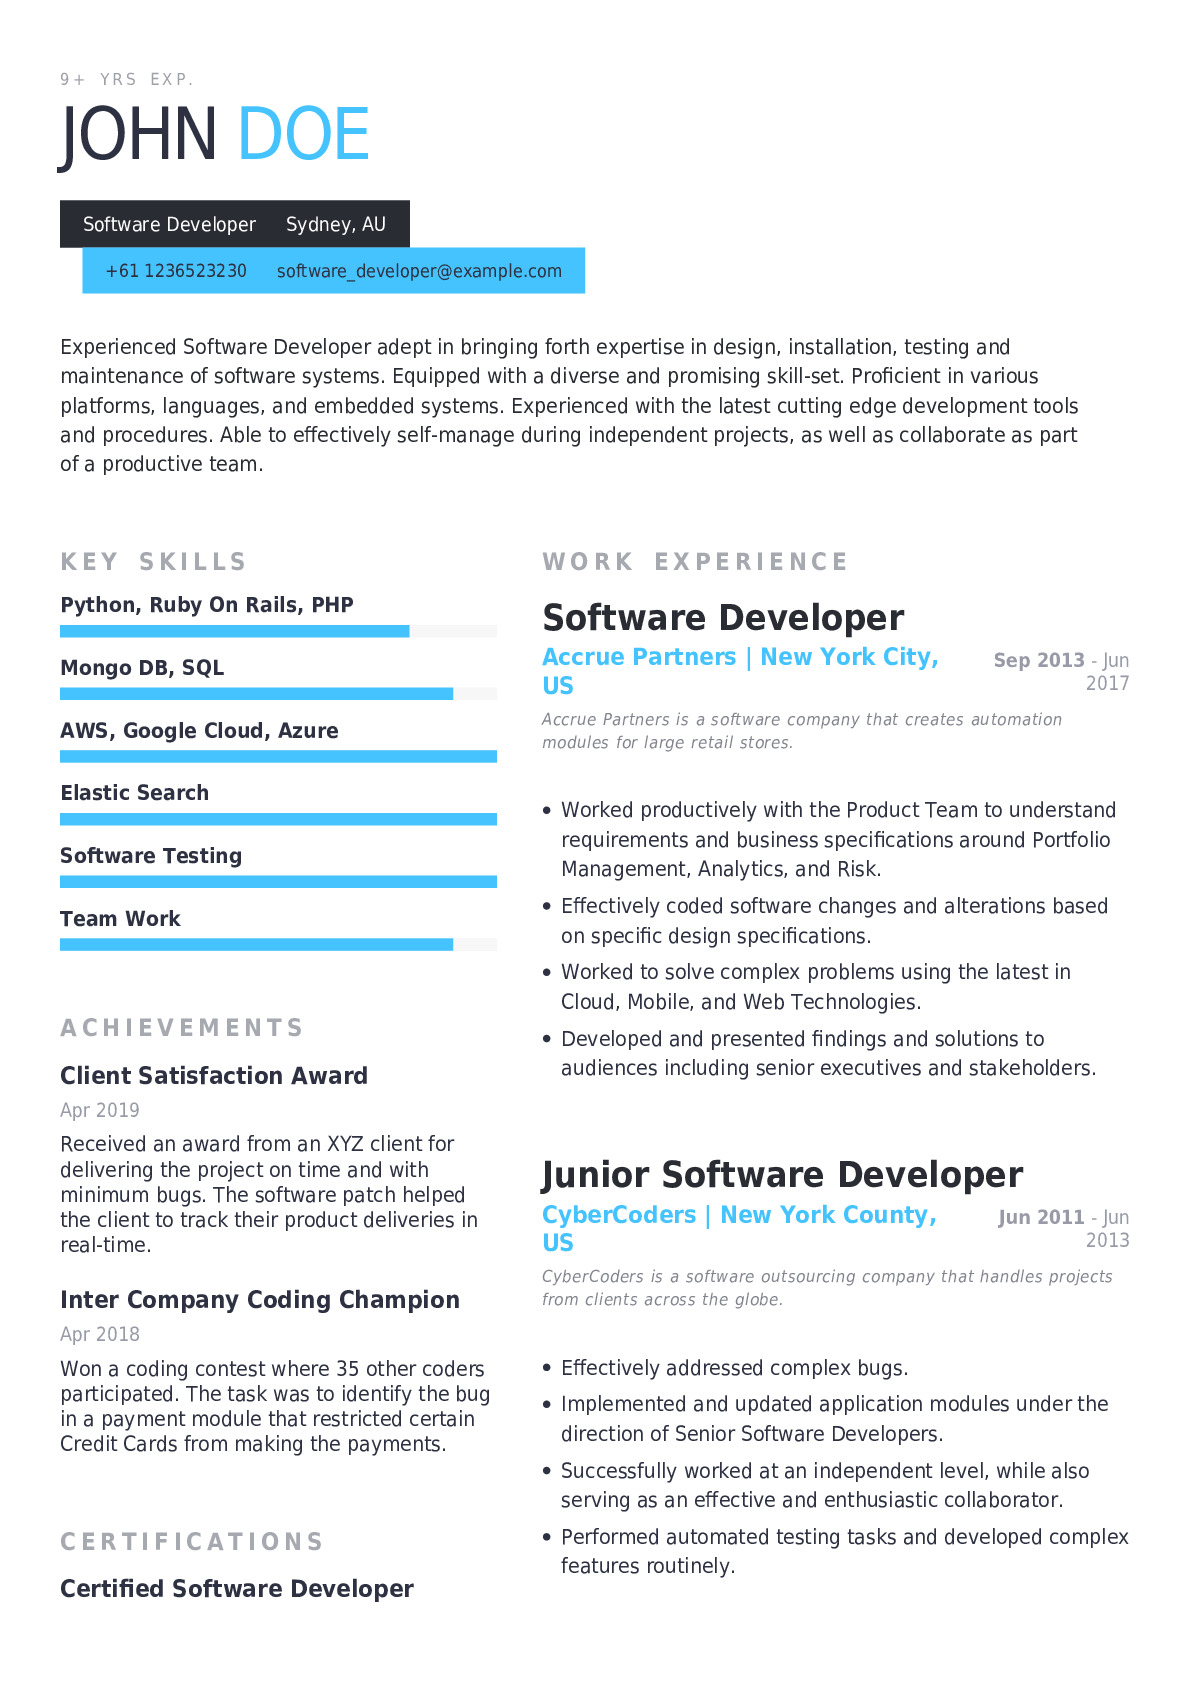 software developer resume example with pre filled content for professionals examples Resume Software Developer Resume Examples 2017